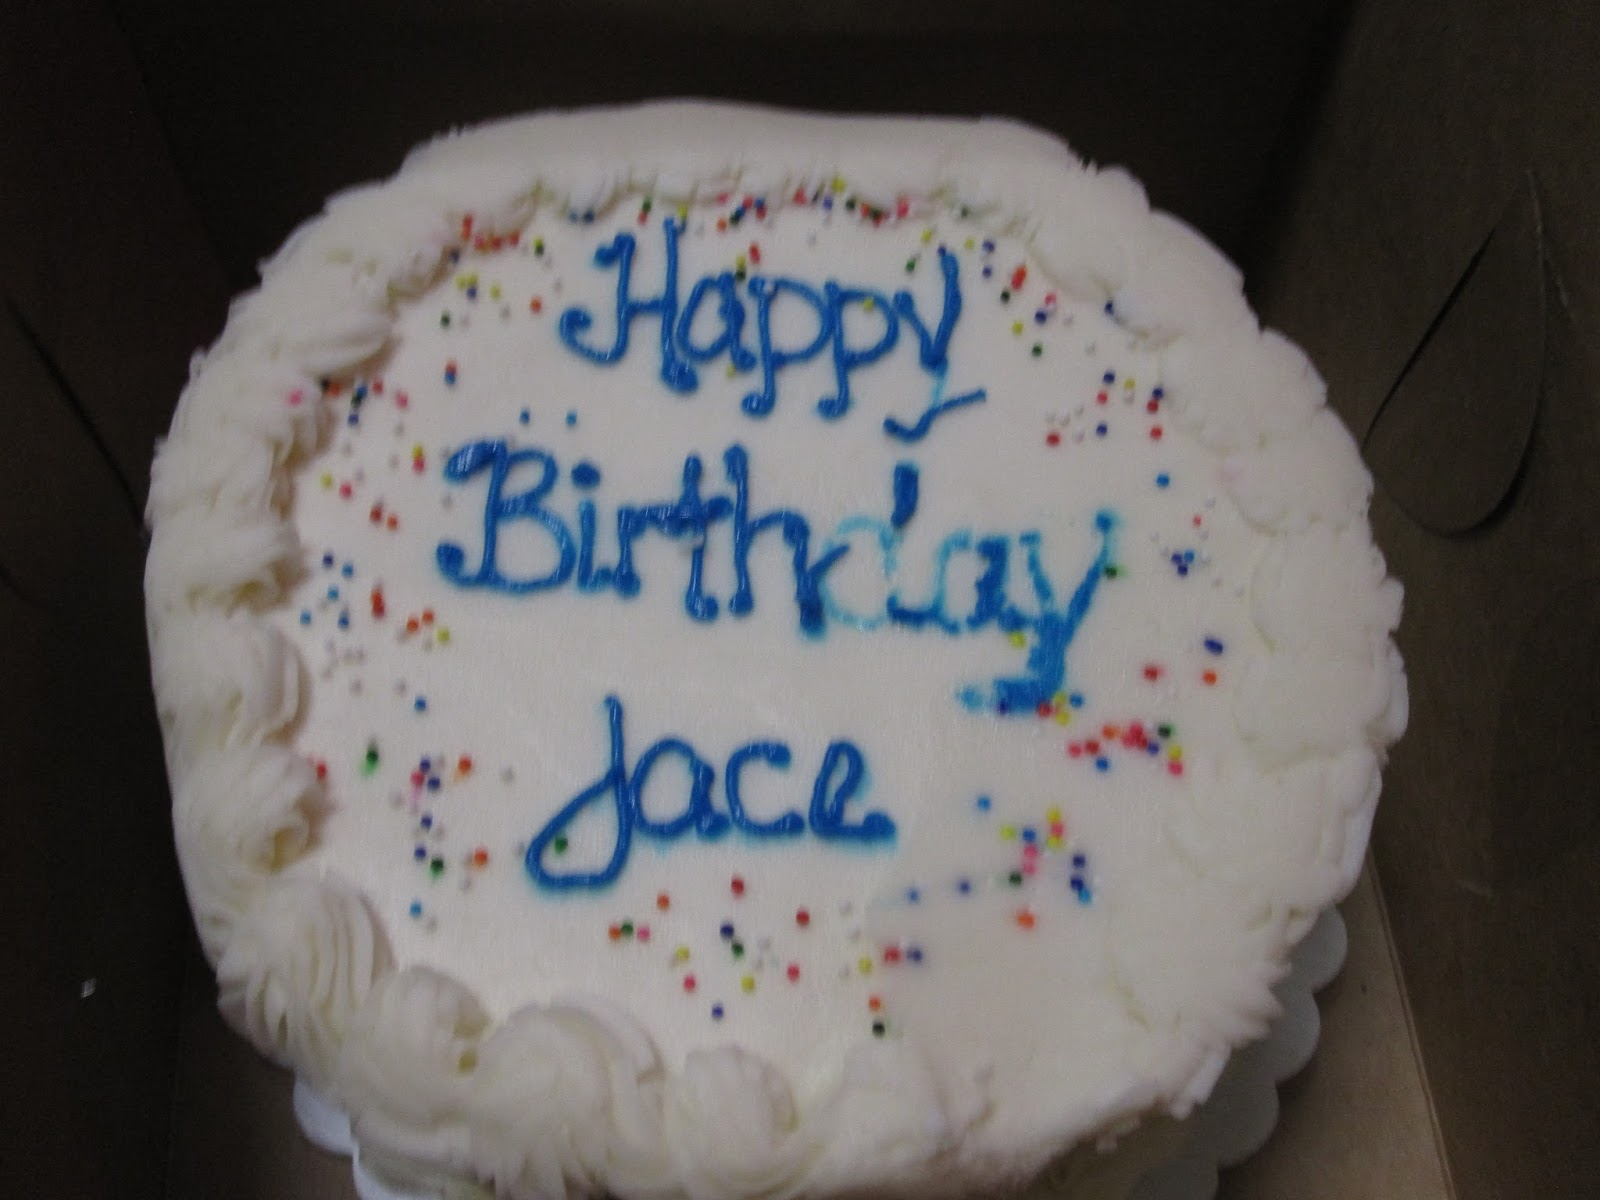 At the Starting Gate : Happy Birthday Jace!